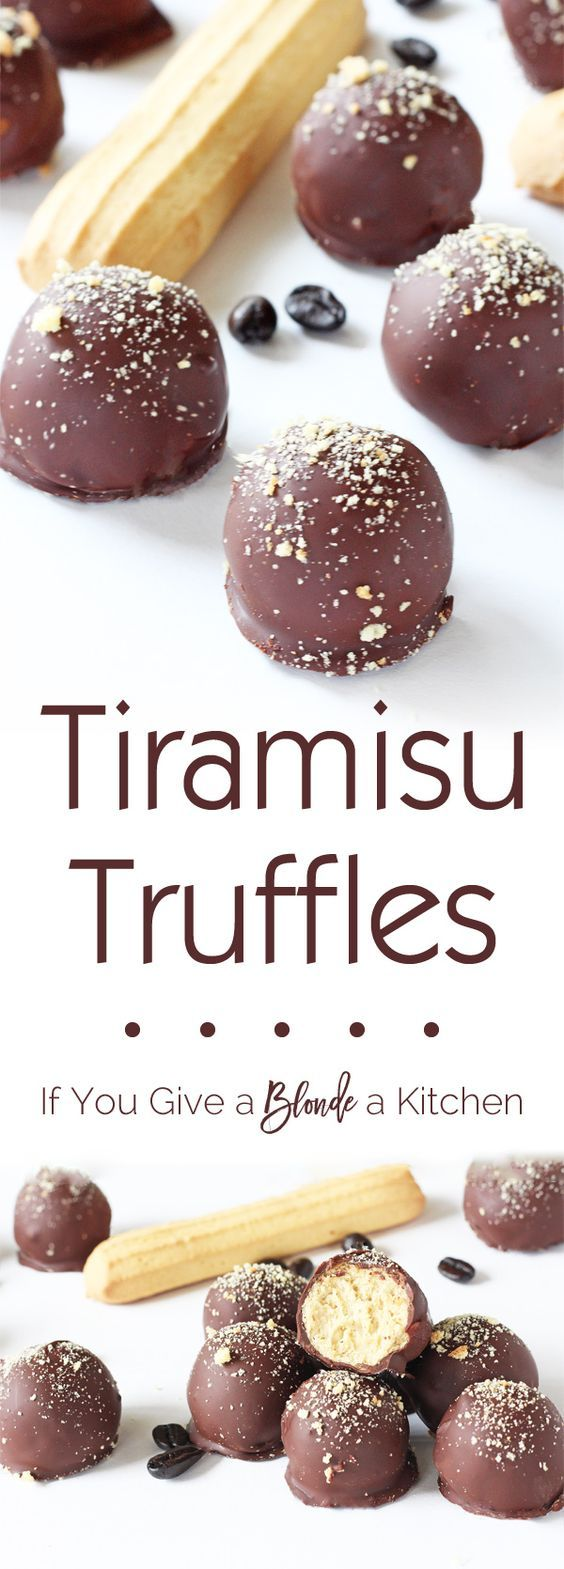 Tiramisu truffles are a wonderful blend of tiramisu flavors (think Italian biscuits, espresso and chocolate) in a delicious bite. The no bake recipe only uses six ingredients!   @haleydwilliams